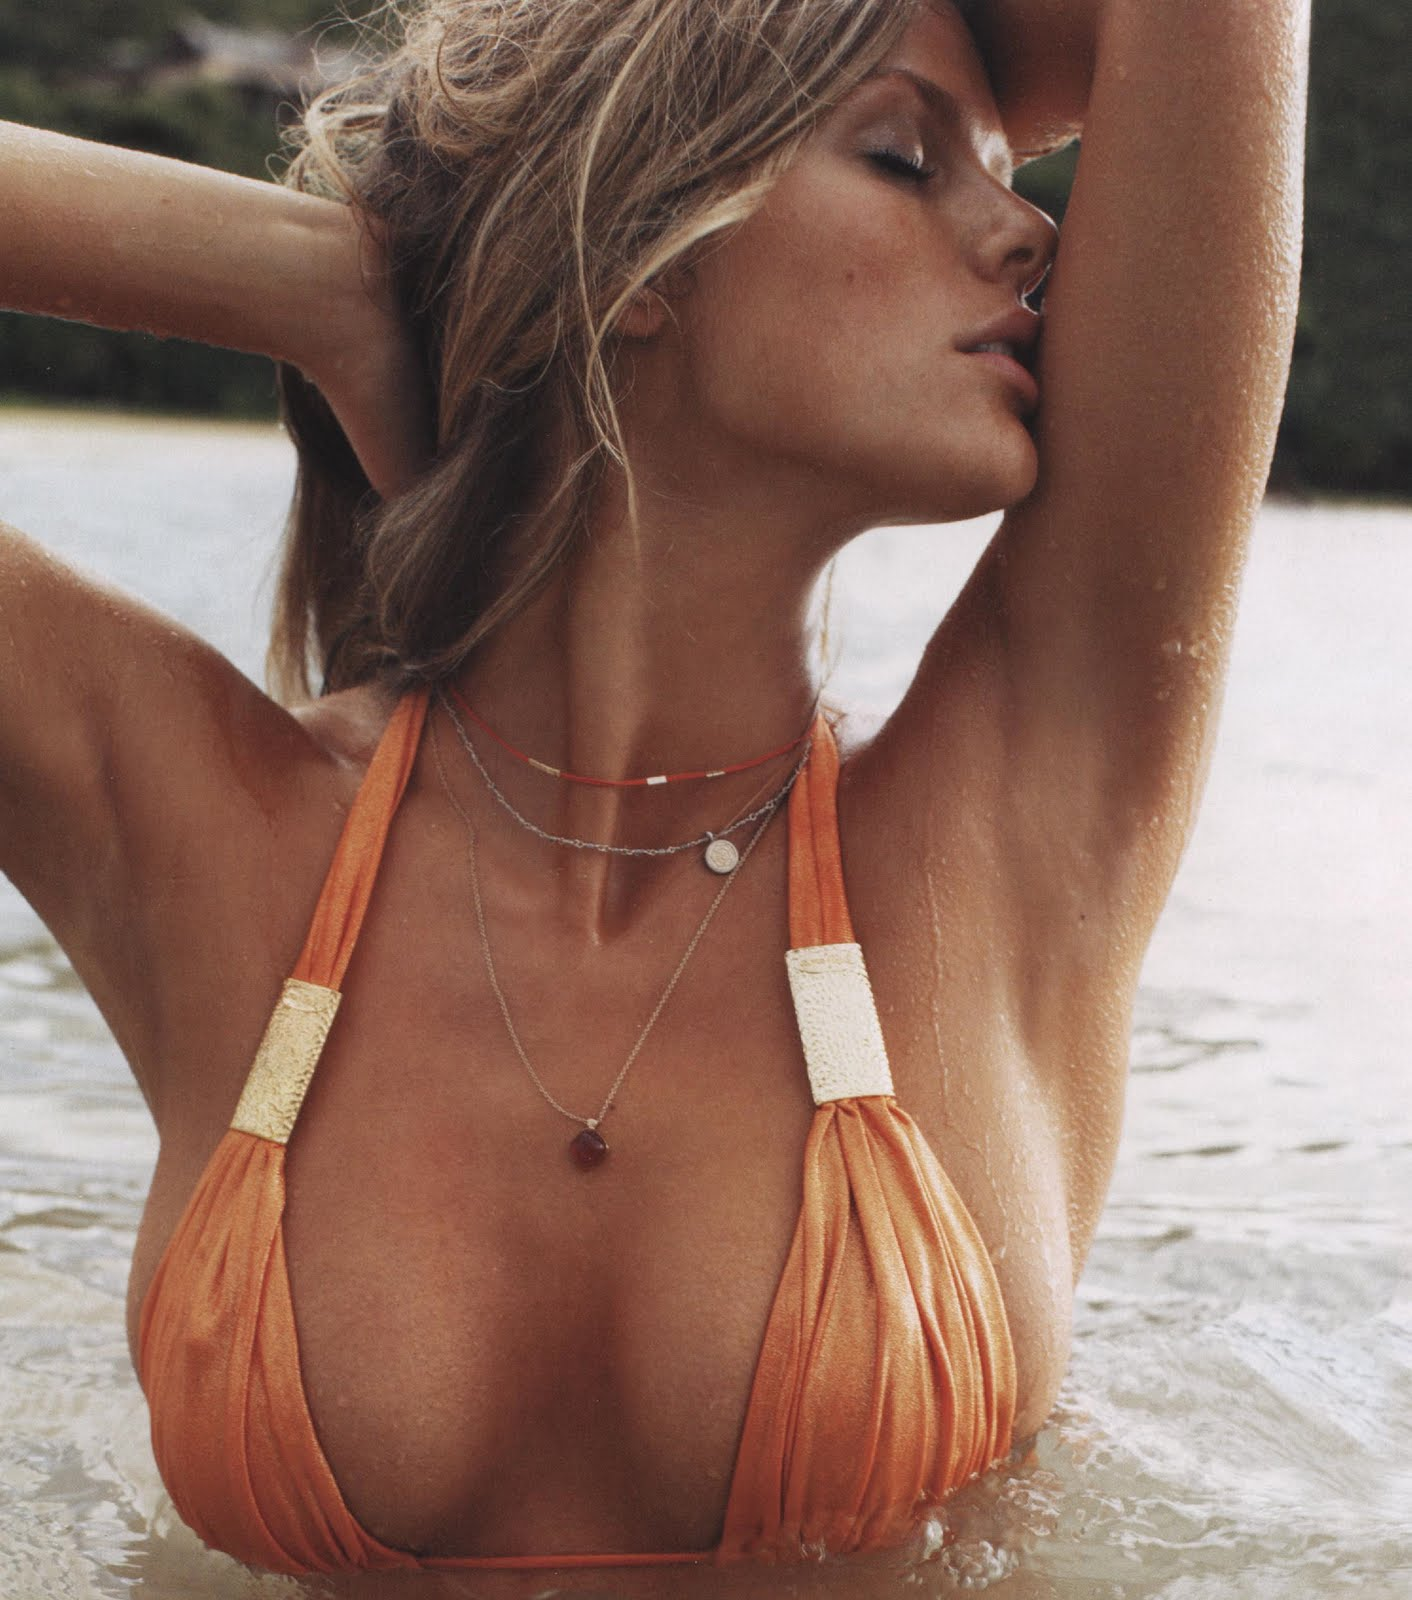 http://2.bp.blogspot.com/_WNrPFGKsaUg/TVC7KdpWiFI/AAAAAAAABgQ/fbKTnOVaVw8/s1600/73341-brooklyn-decker-sports-illustrated-swimsuit-.jpg